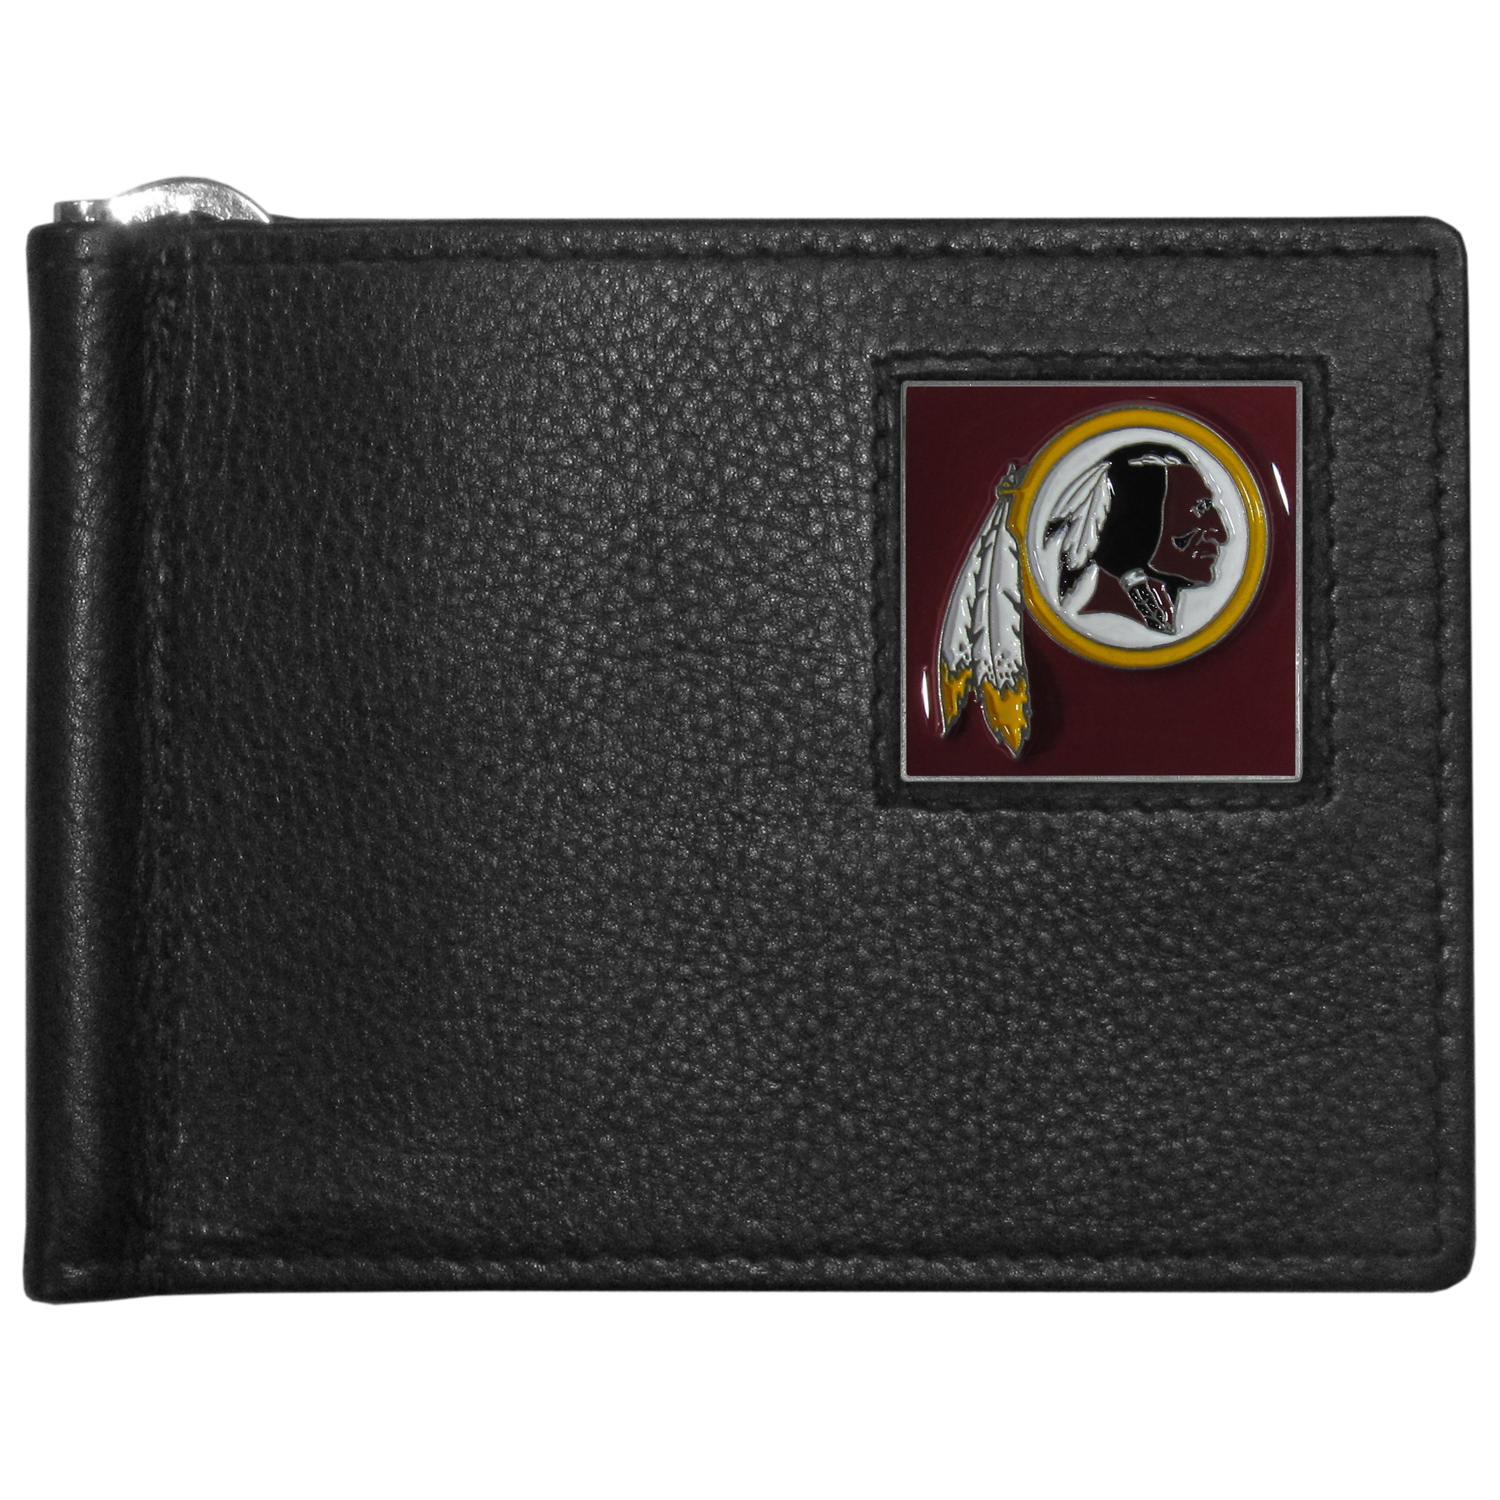 Washington Redskins Leather Bill Clip Wallet - This cool new style wallet features an inner, metal bill clip that lips up for easy access. The super slim wallet holds tons of stuff with ample pockets, credit card slots & windowed ID slot.  The wallet is made of genuine fine grain leather and it finished with a metal Washington Redskins emblem. The wallet is shipped in gift box packaging.